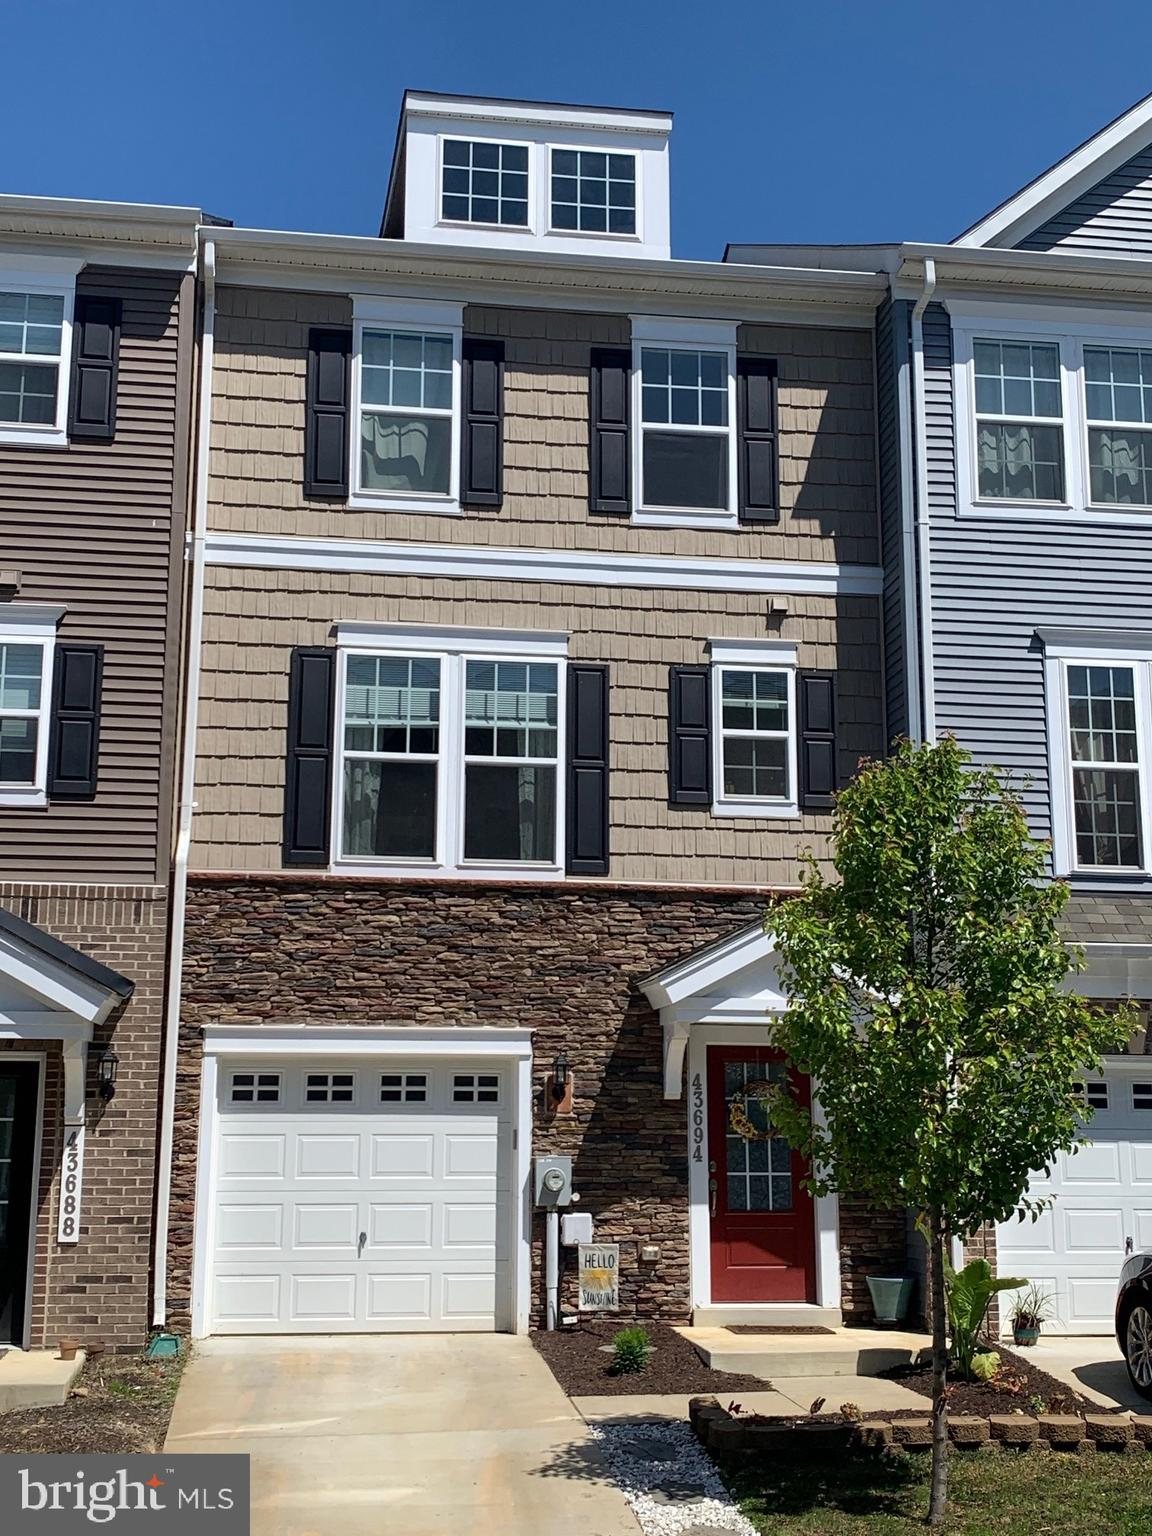 Wonderful townhouse in Evergreen Park close to all the amenities in Wildewood and within walking dis